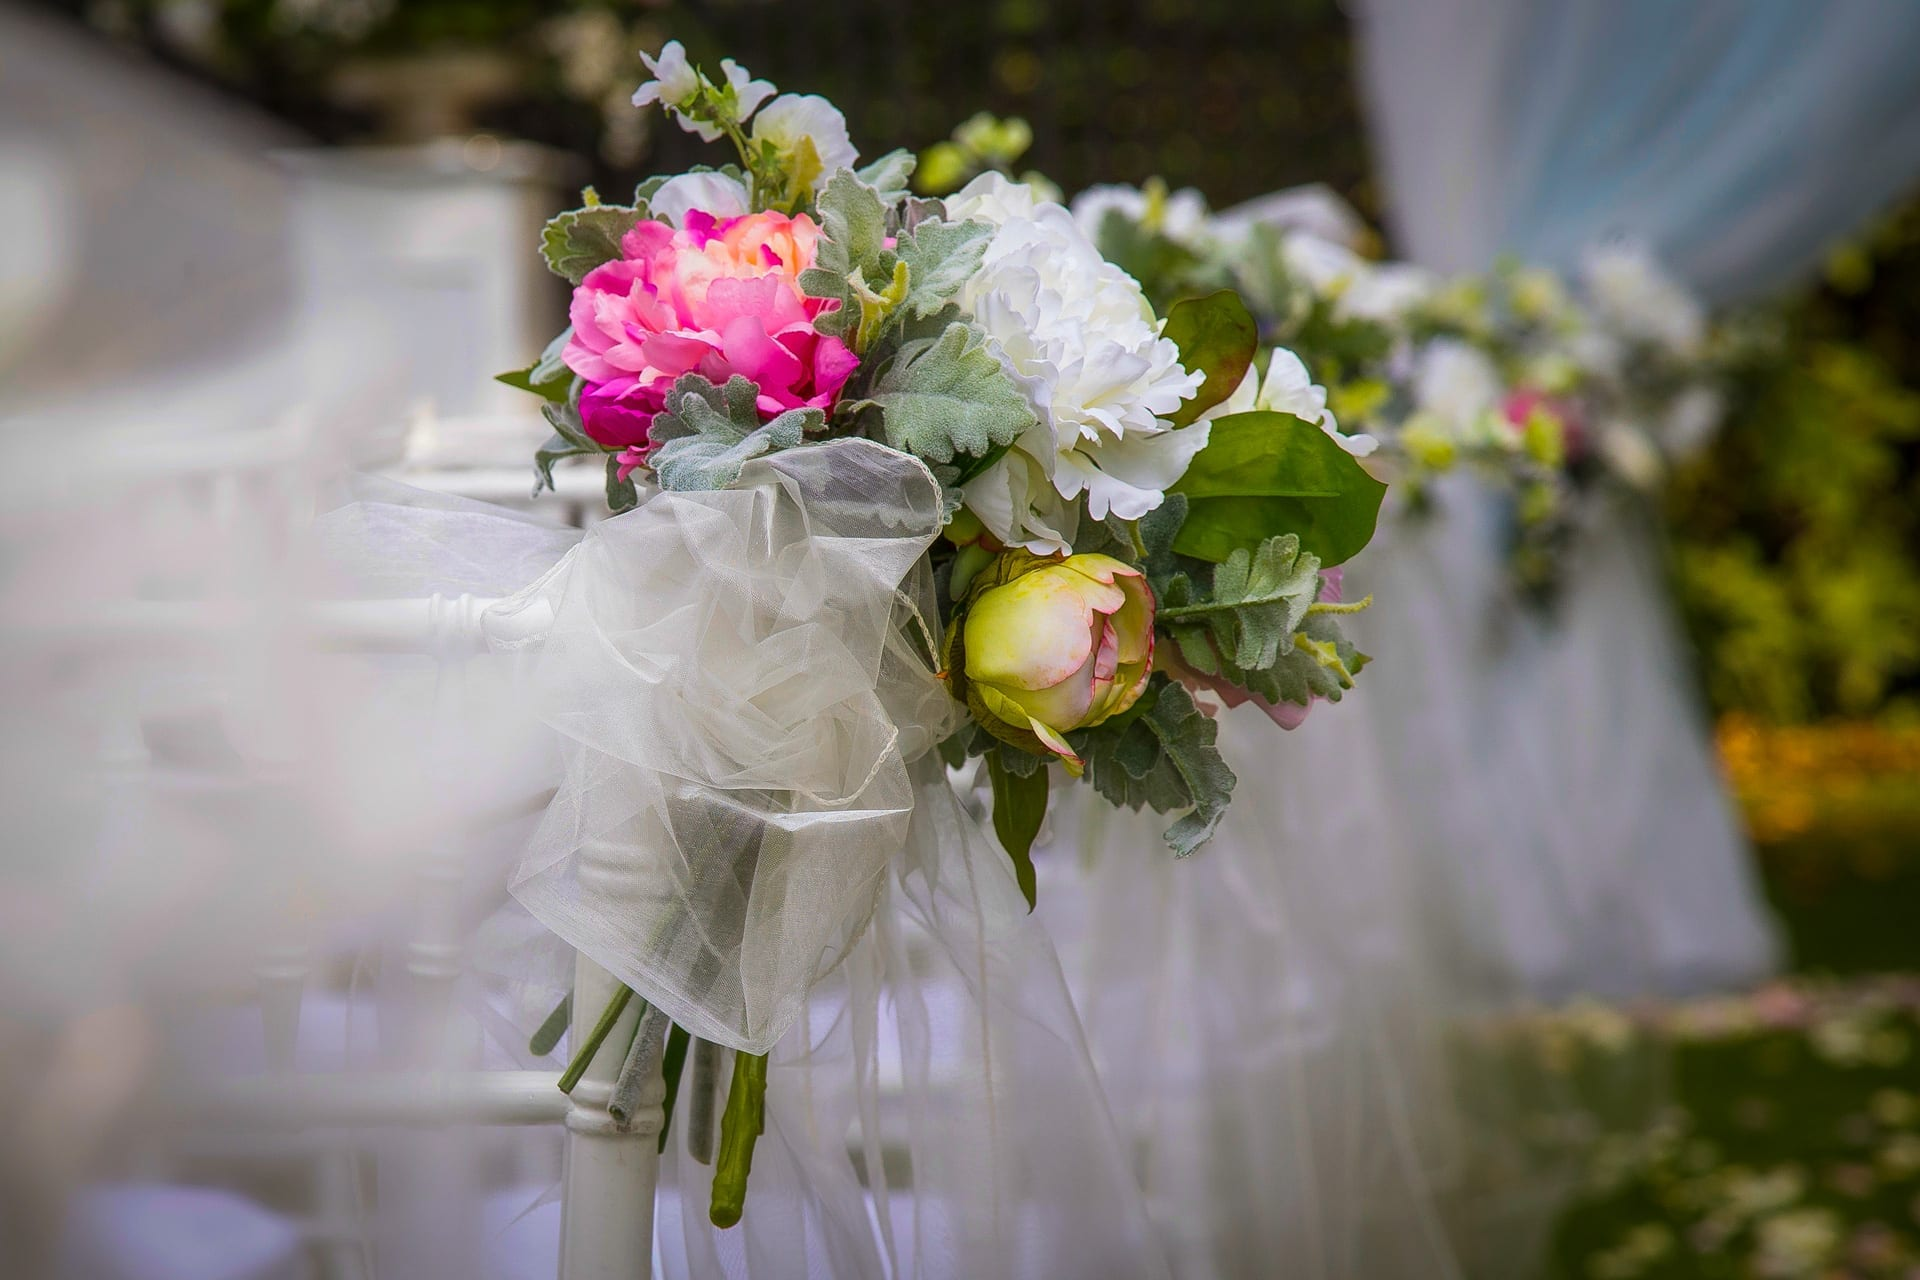 kim Chan Events| asile flowers on chairs with organza bows